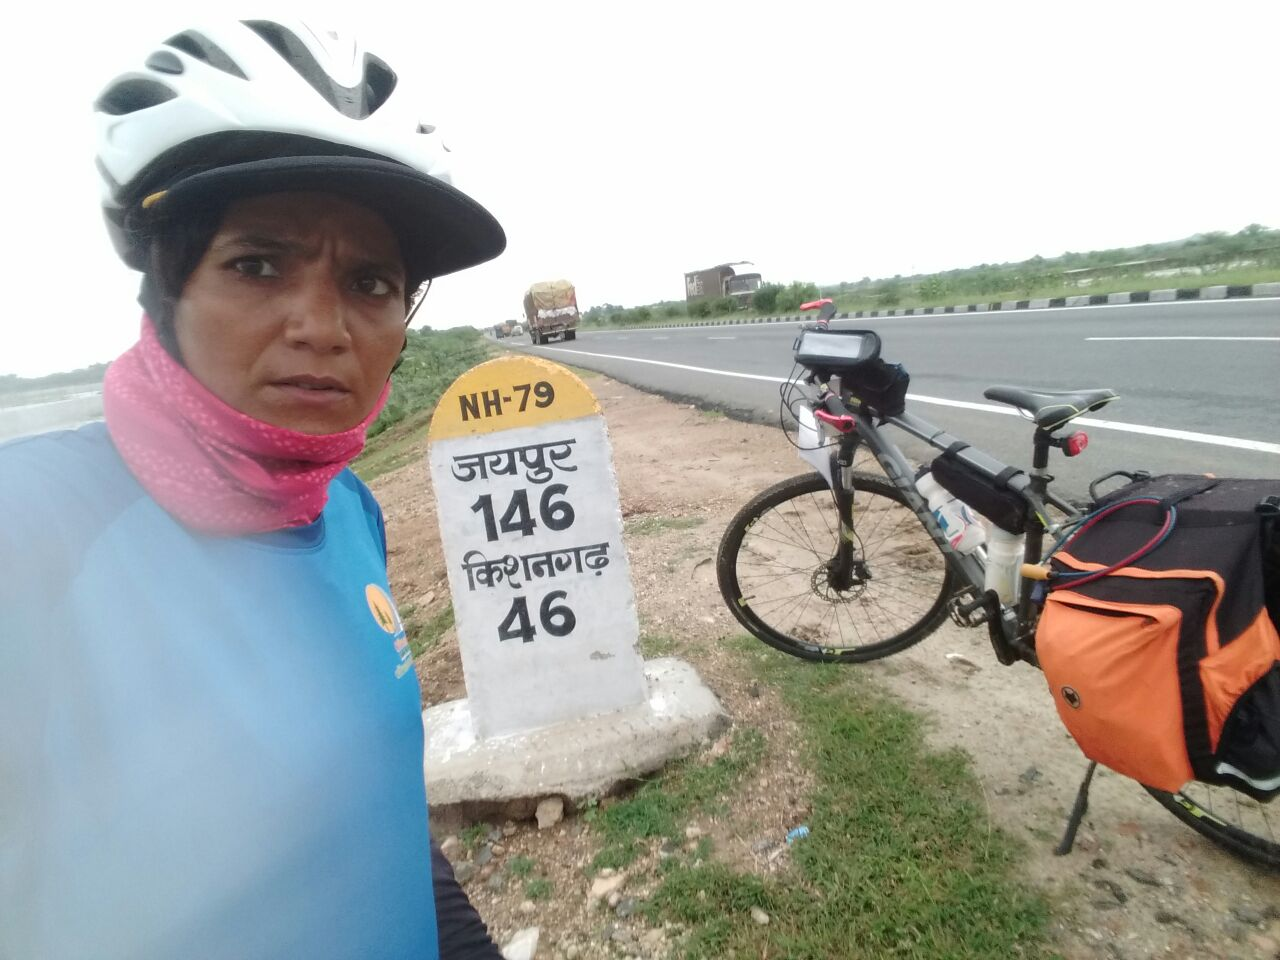 Nearing the destination - Solo Cycling Expedition